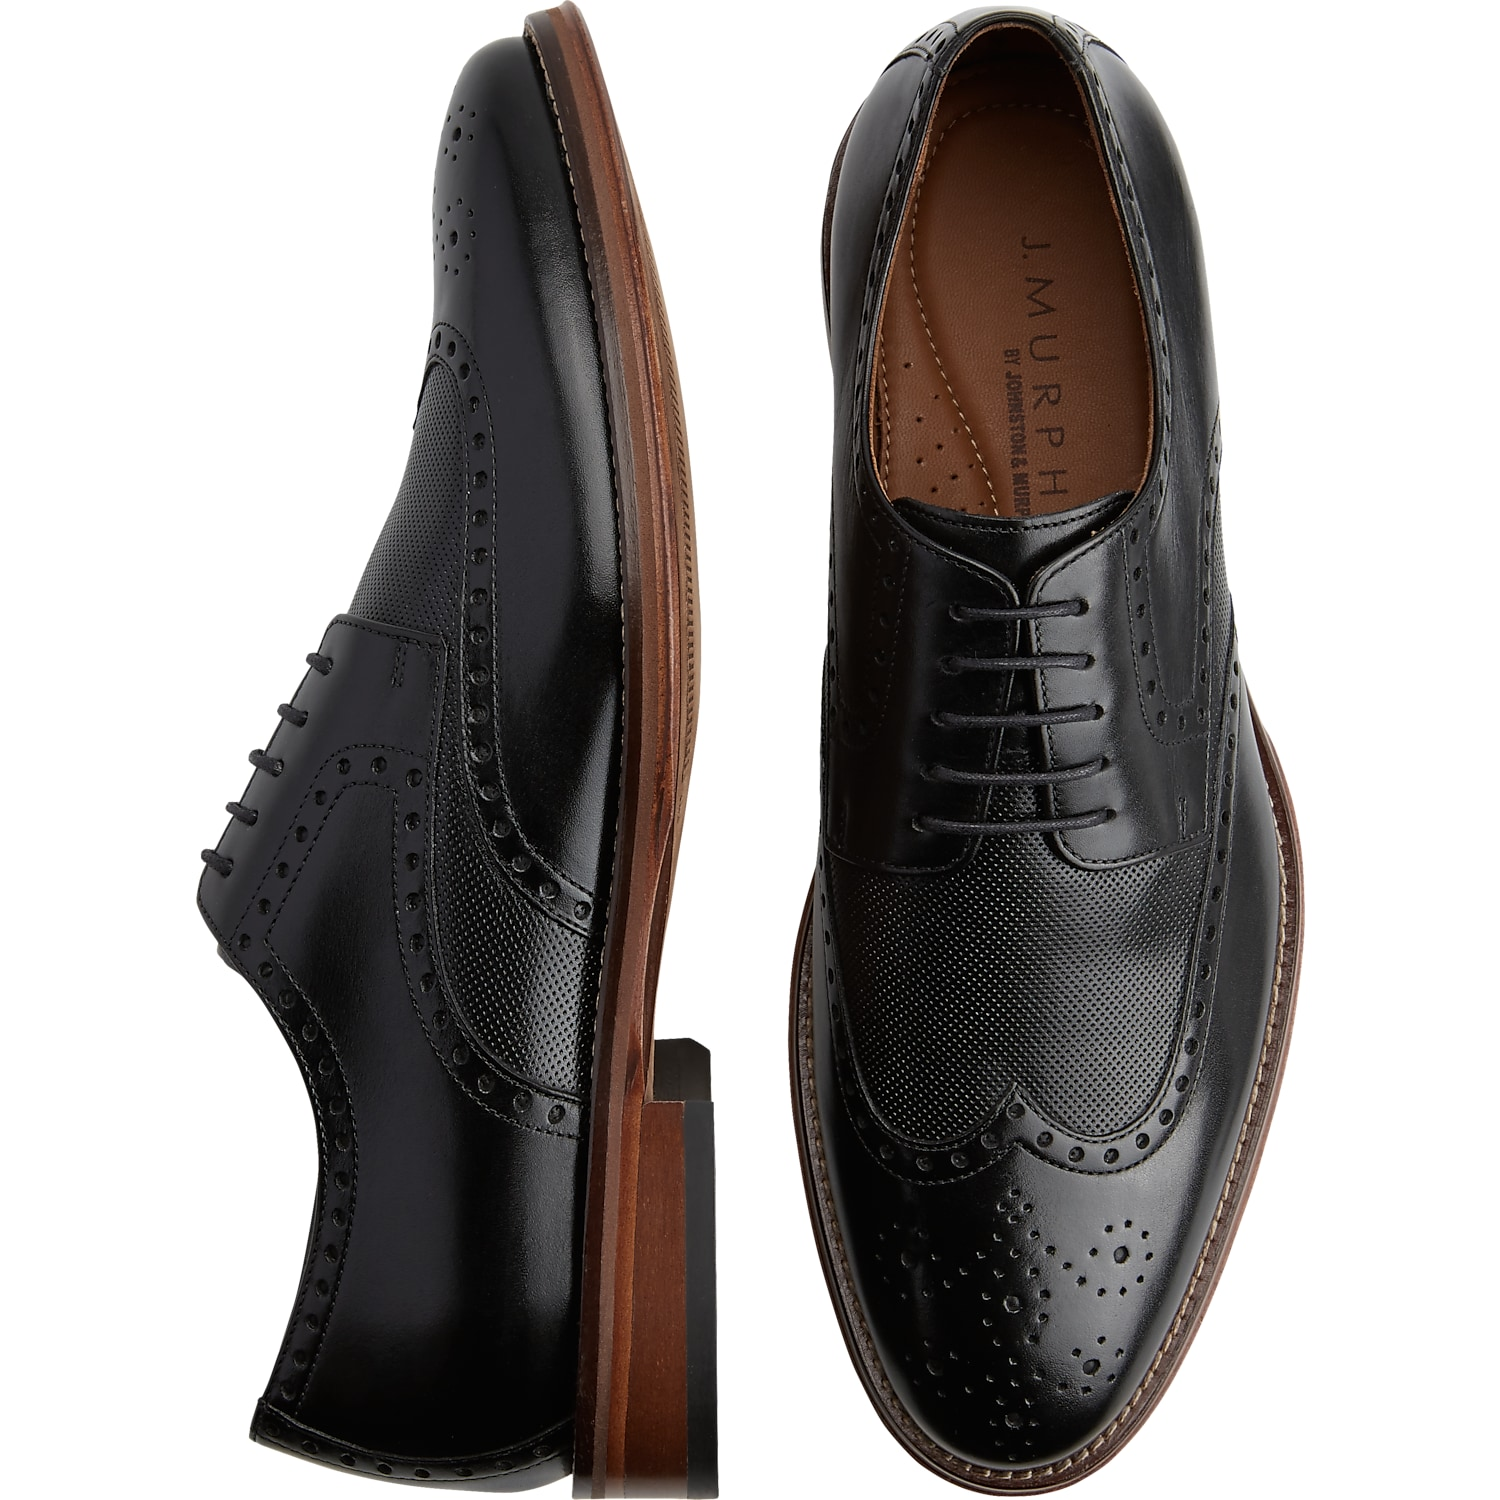 Bates White Dress Shoes